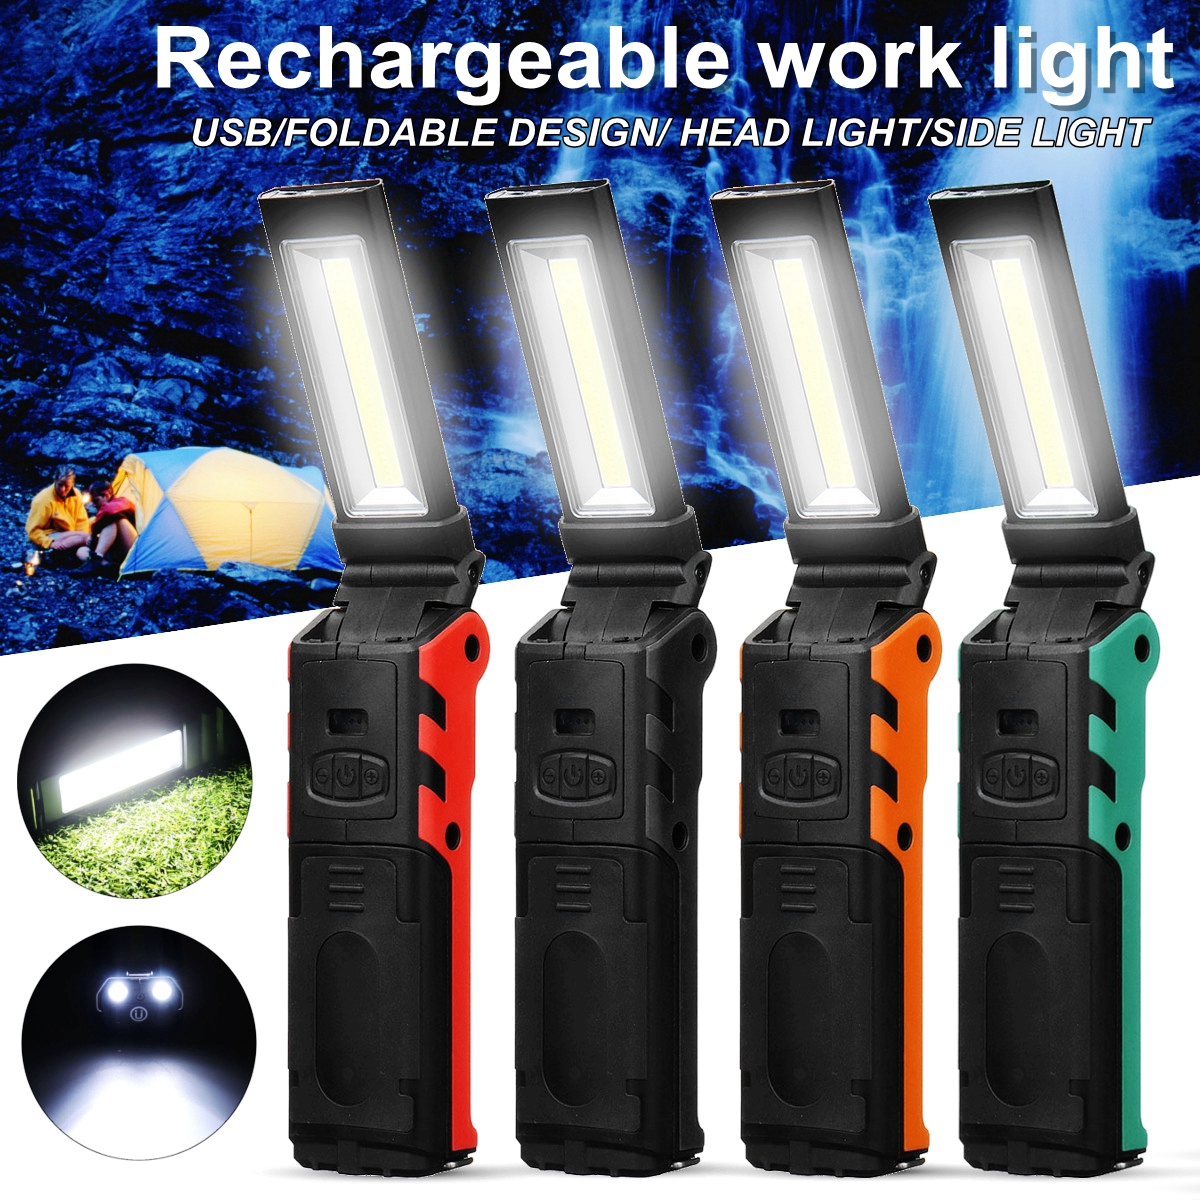 Dimmable COB LED Work Light USB Rechargeable Flashlight Inspection Lamp With Magnetic &Hook Power Bank 2000mAh 18650 Battery